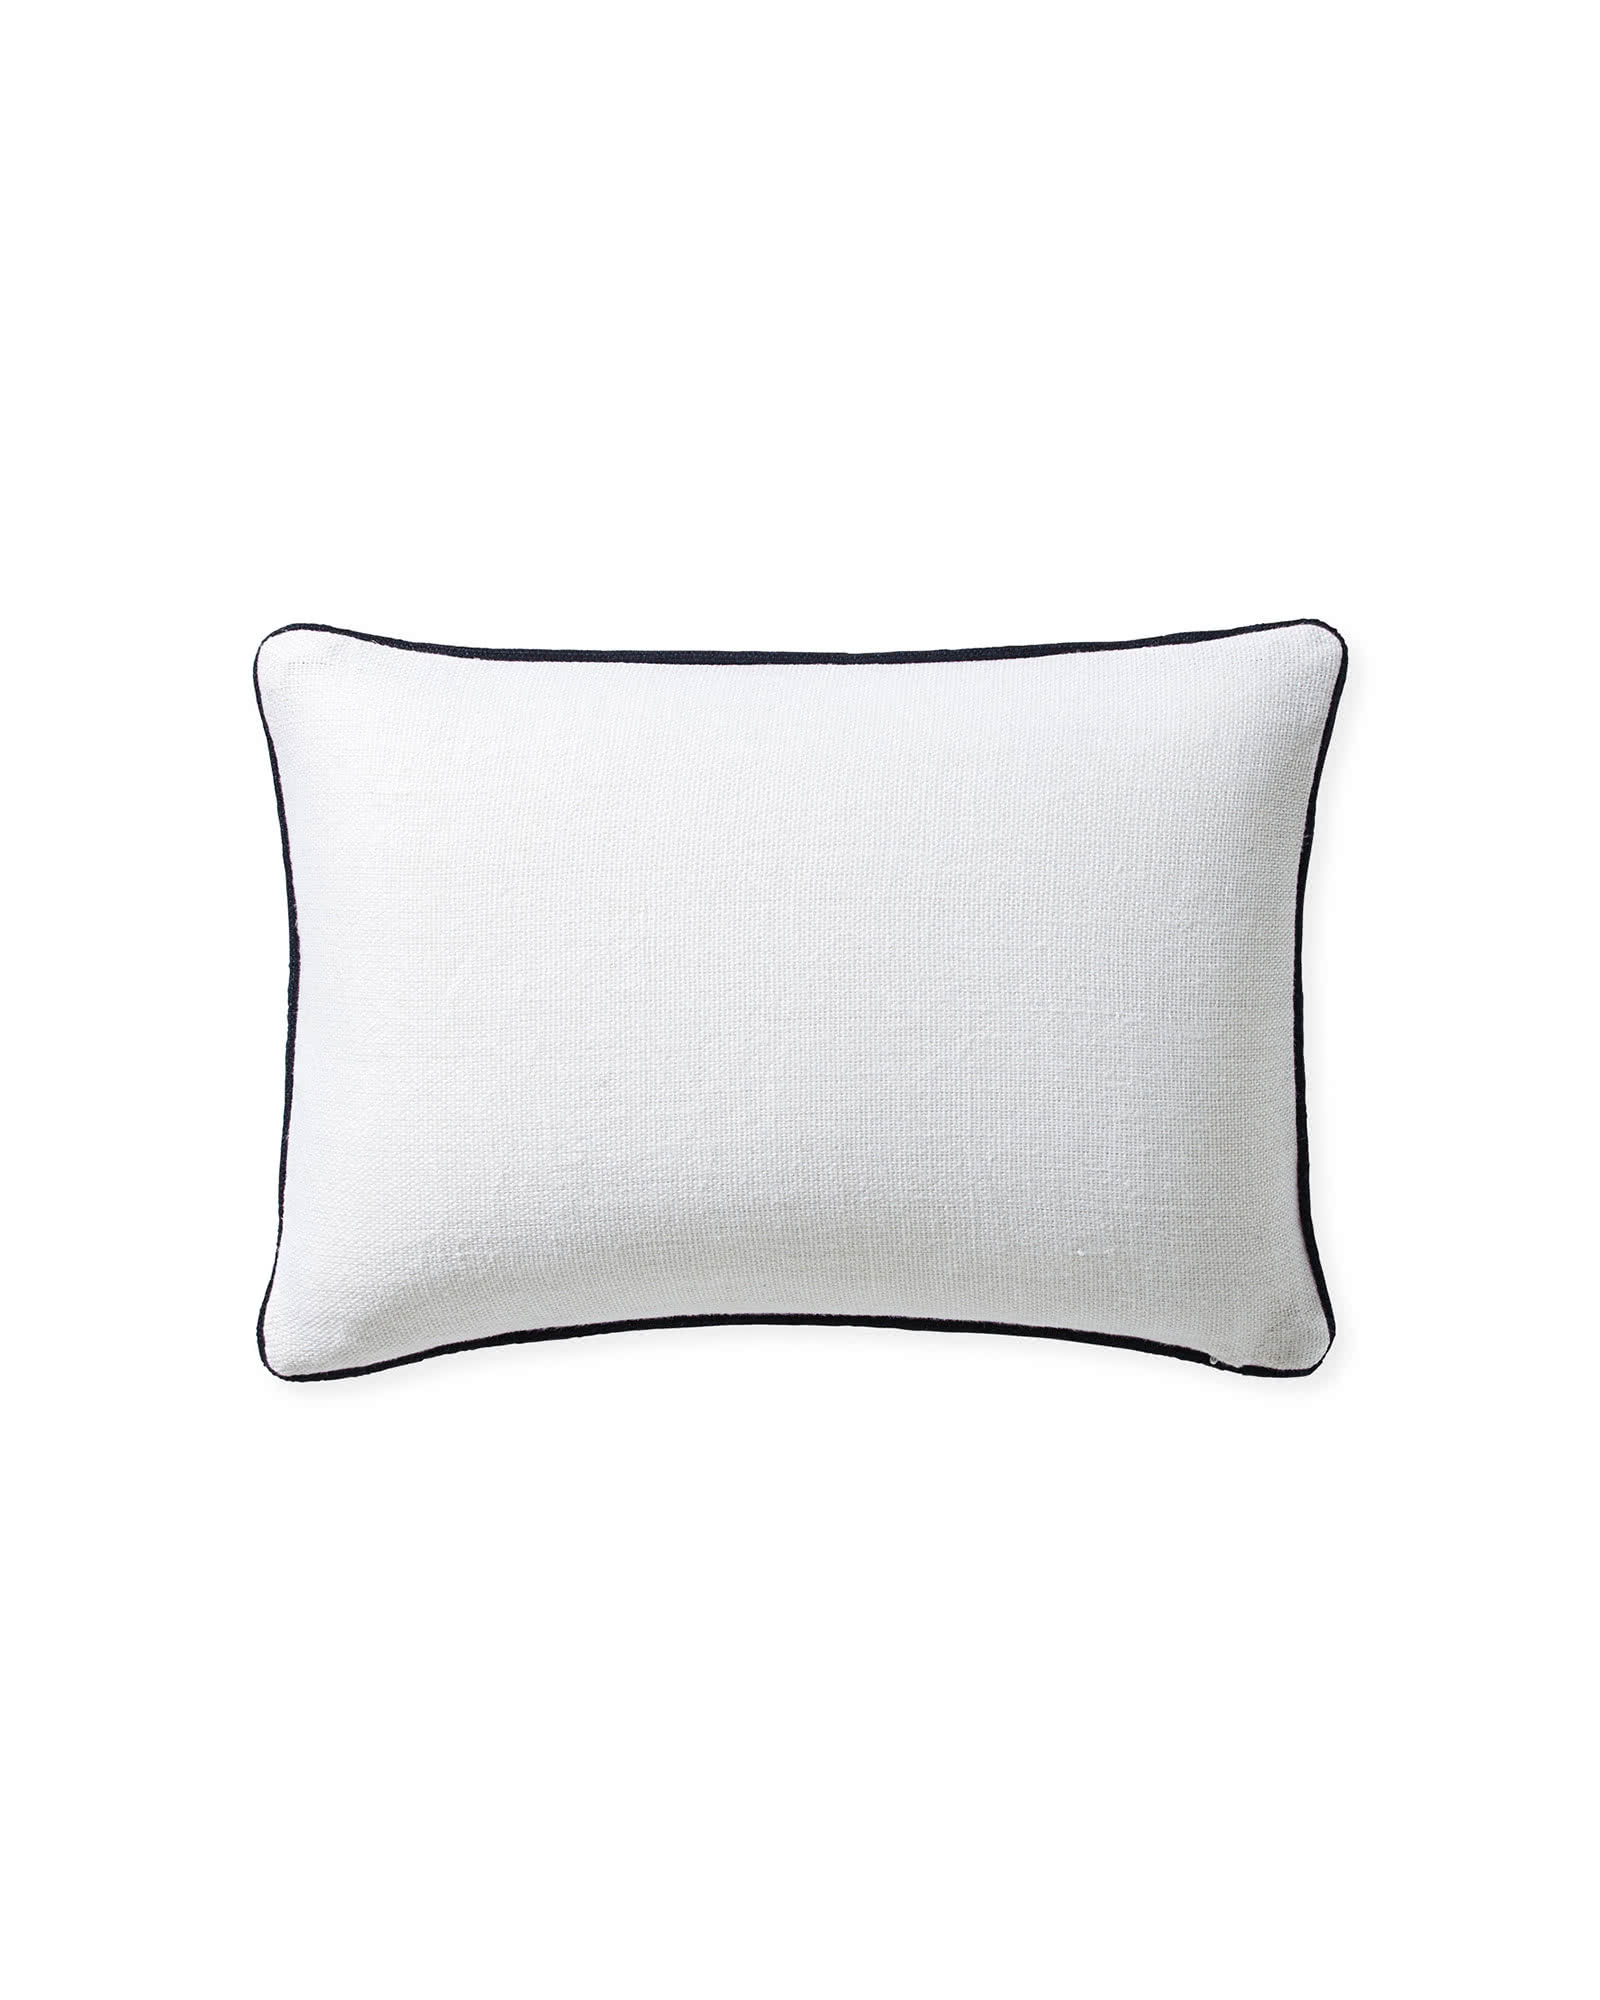 Blossom Pillow Cover, White/Harbor